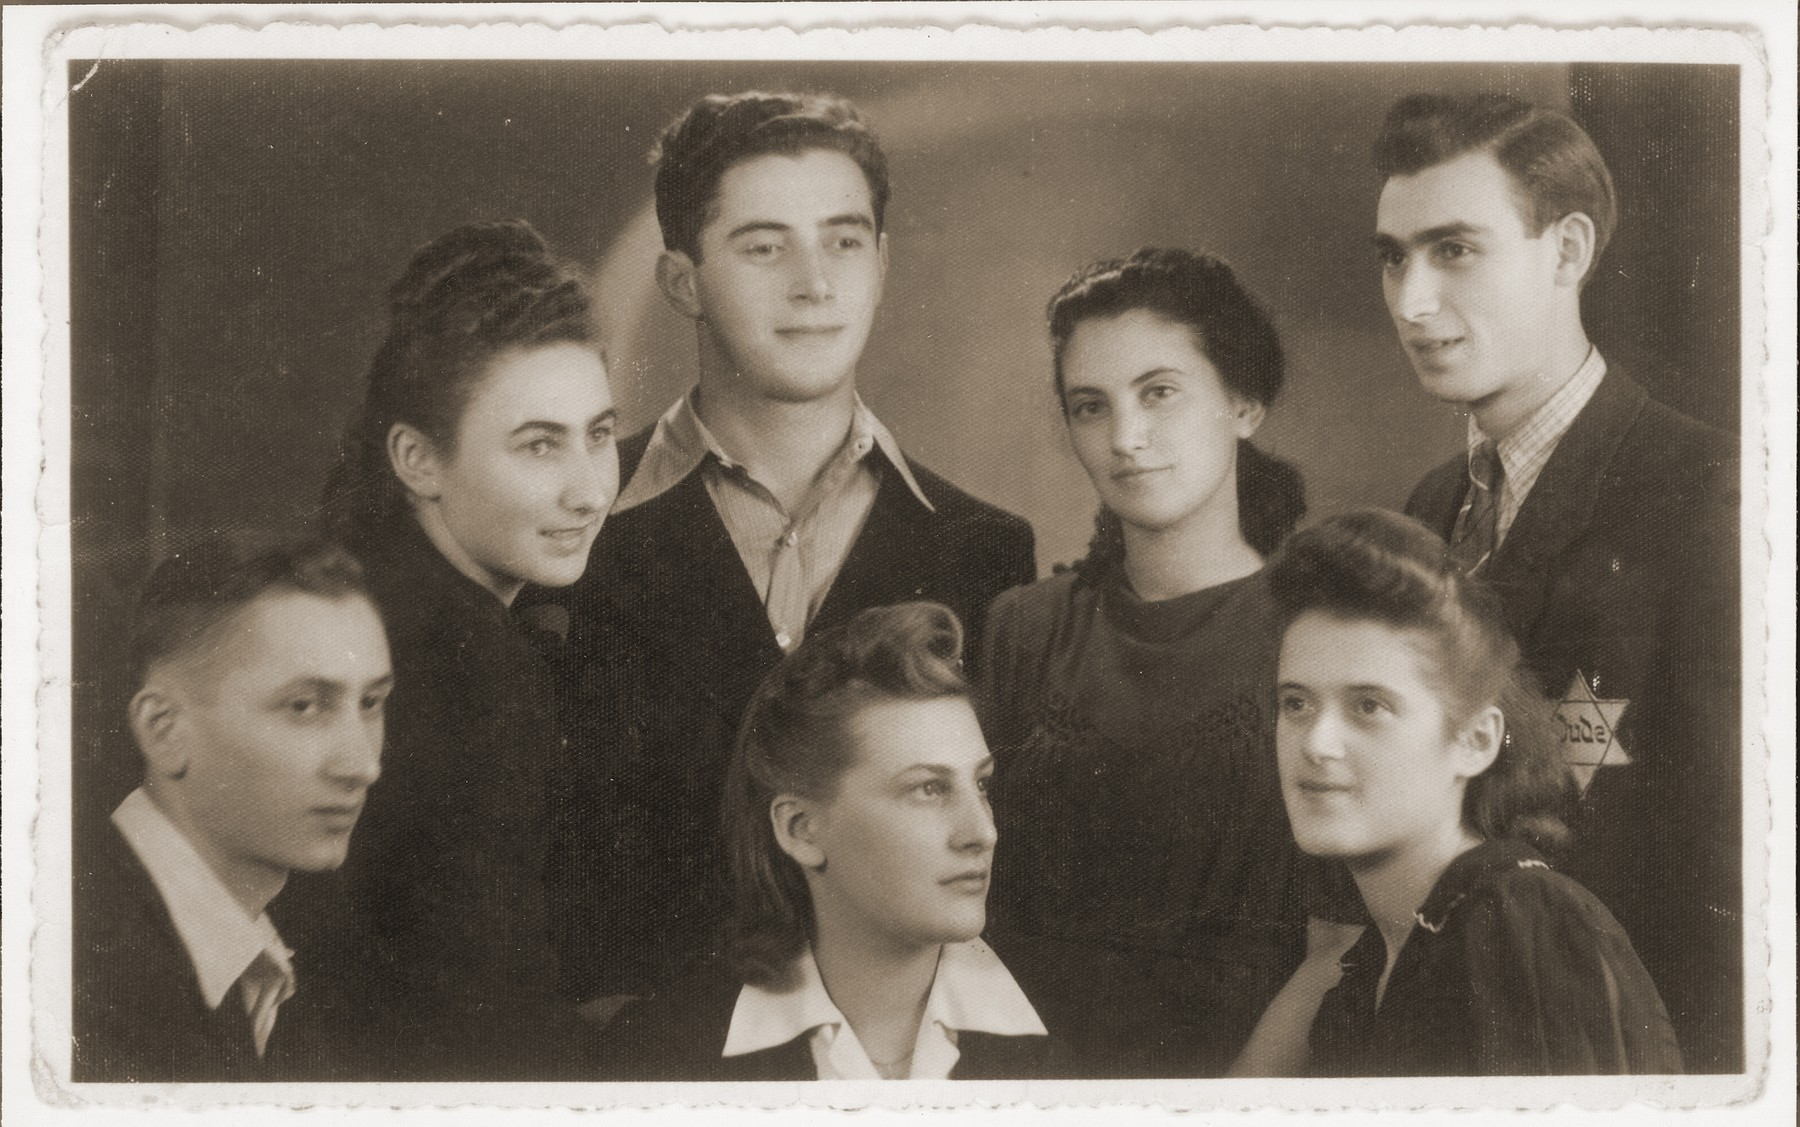 Group portrait of Jewish youth in the Bedzin ghetto.  Among those pictured is Mania Baum (front row, second from the left); Dosia Dafner (front row, right); Rozia Sztrochlic (standing in the second row, second from the right); and Moniek Dafner (Mania's fiance, second row, third from the right).  Moniek survived and lives in the U.S.